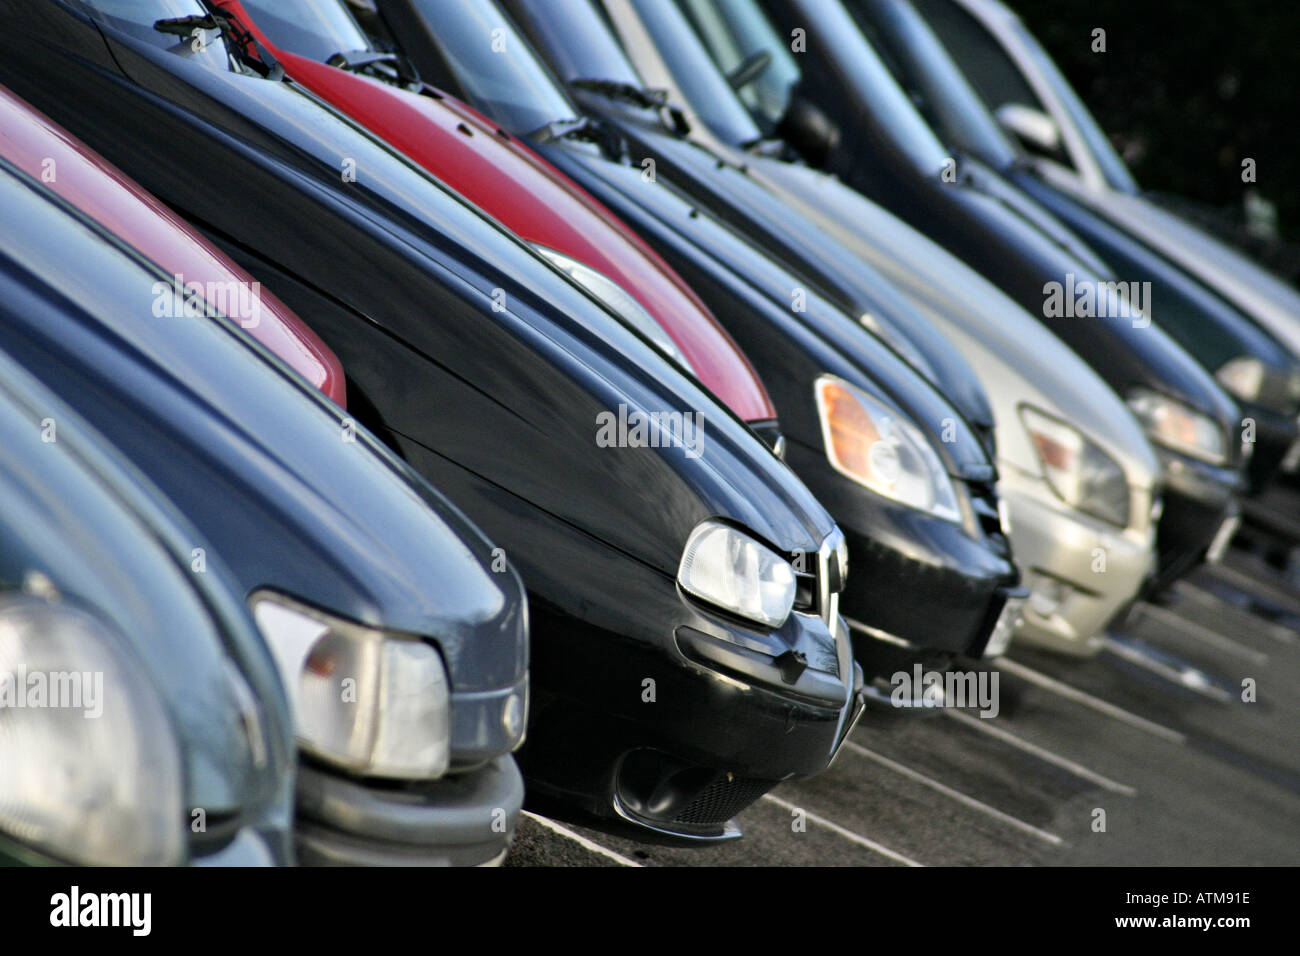 Row of cars - Stock Image